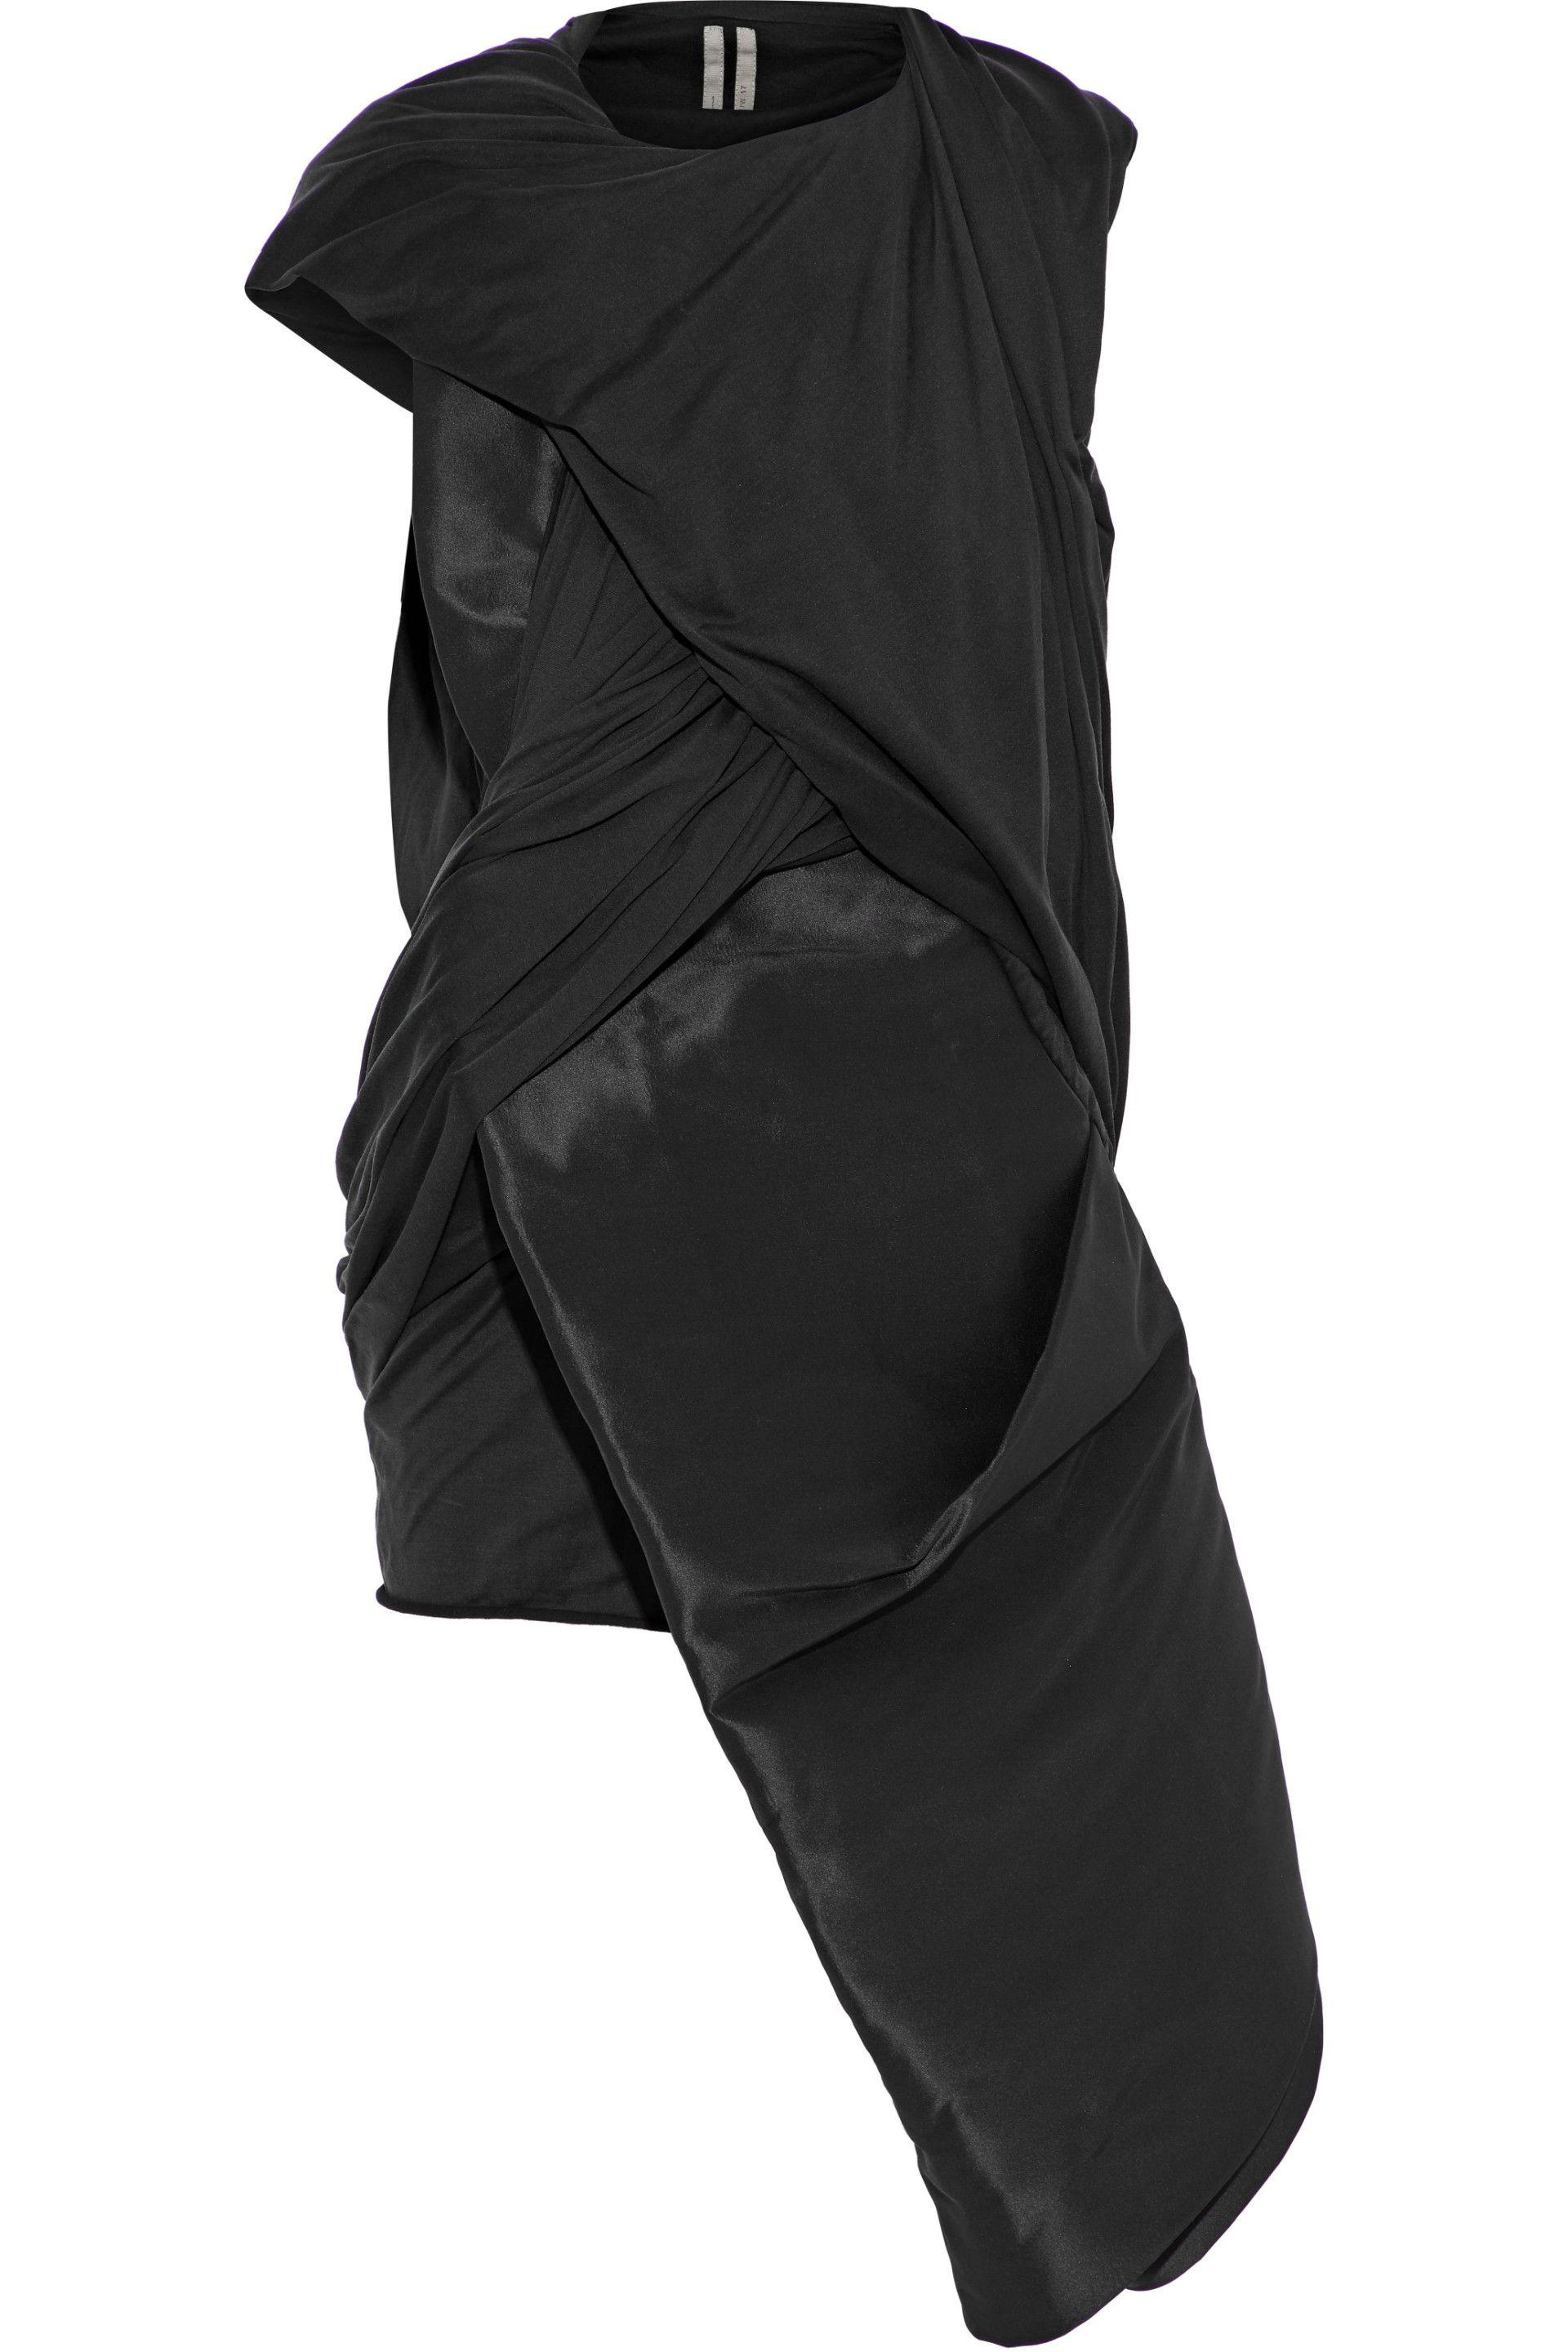 35db4a5a46e43 Rick Owens. Women s Woman Stomper Asymmetric Satin-paneled Silk-jersey Top  Black